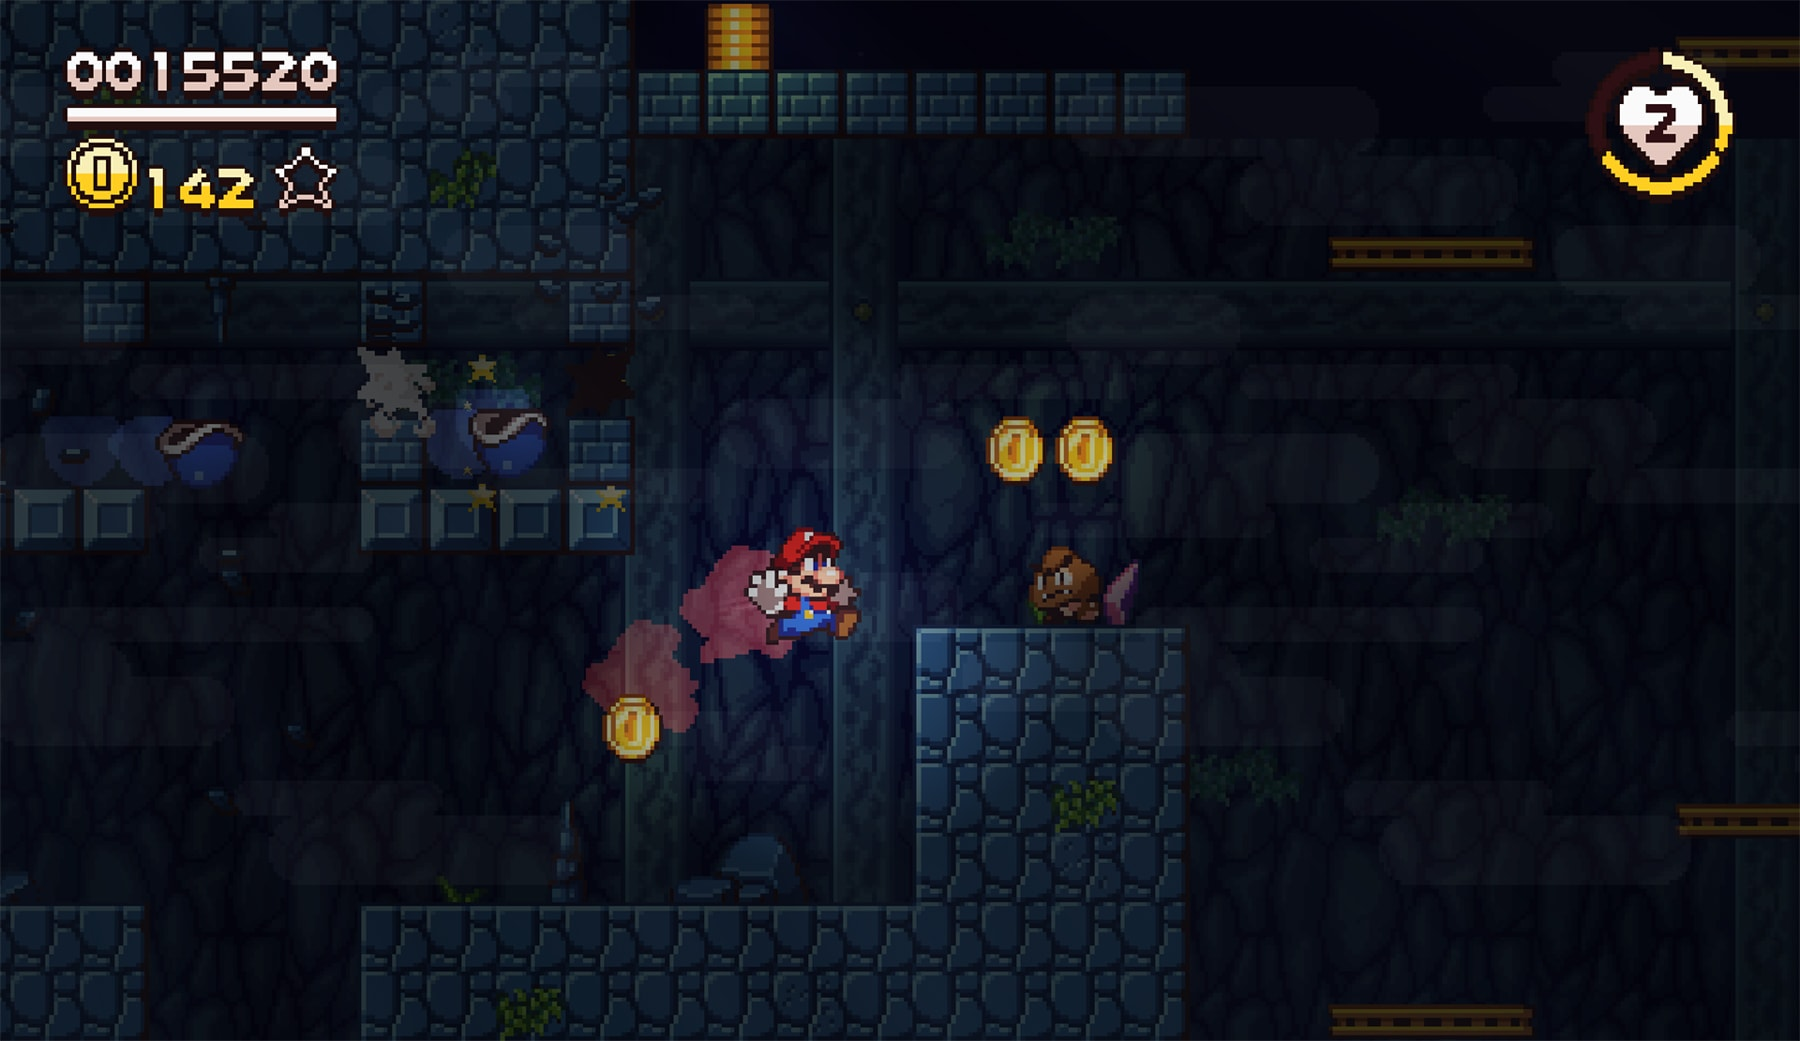 Super Mario Flashback' is a stunning pixel art fan game